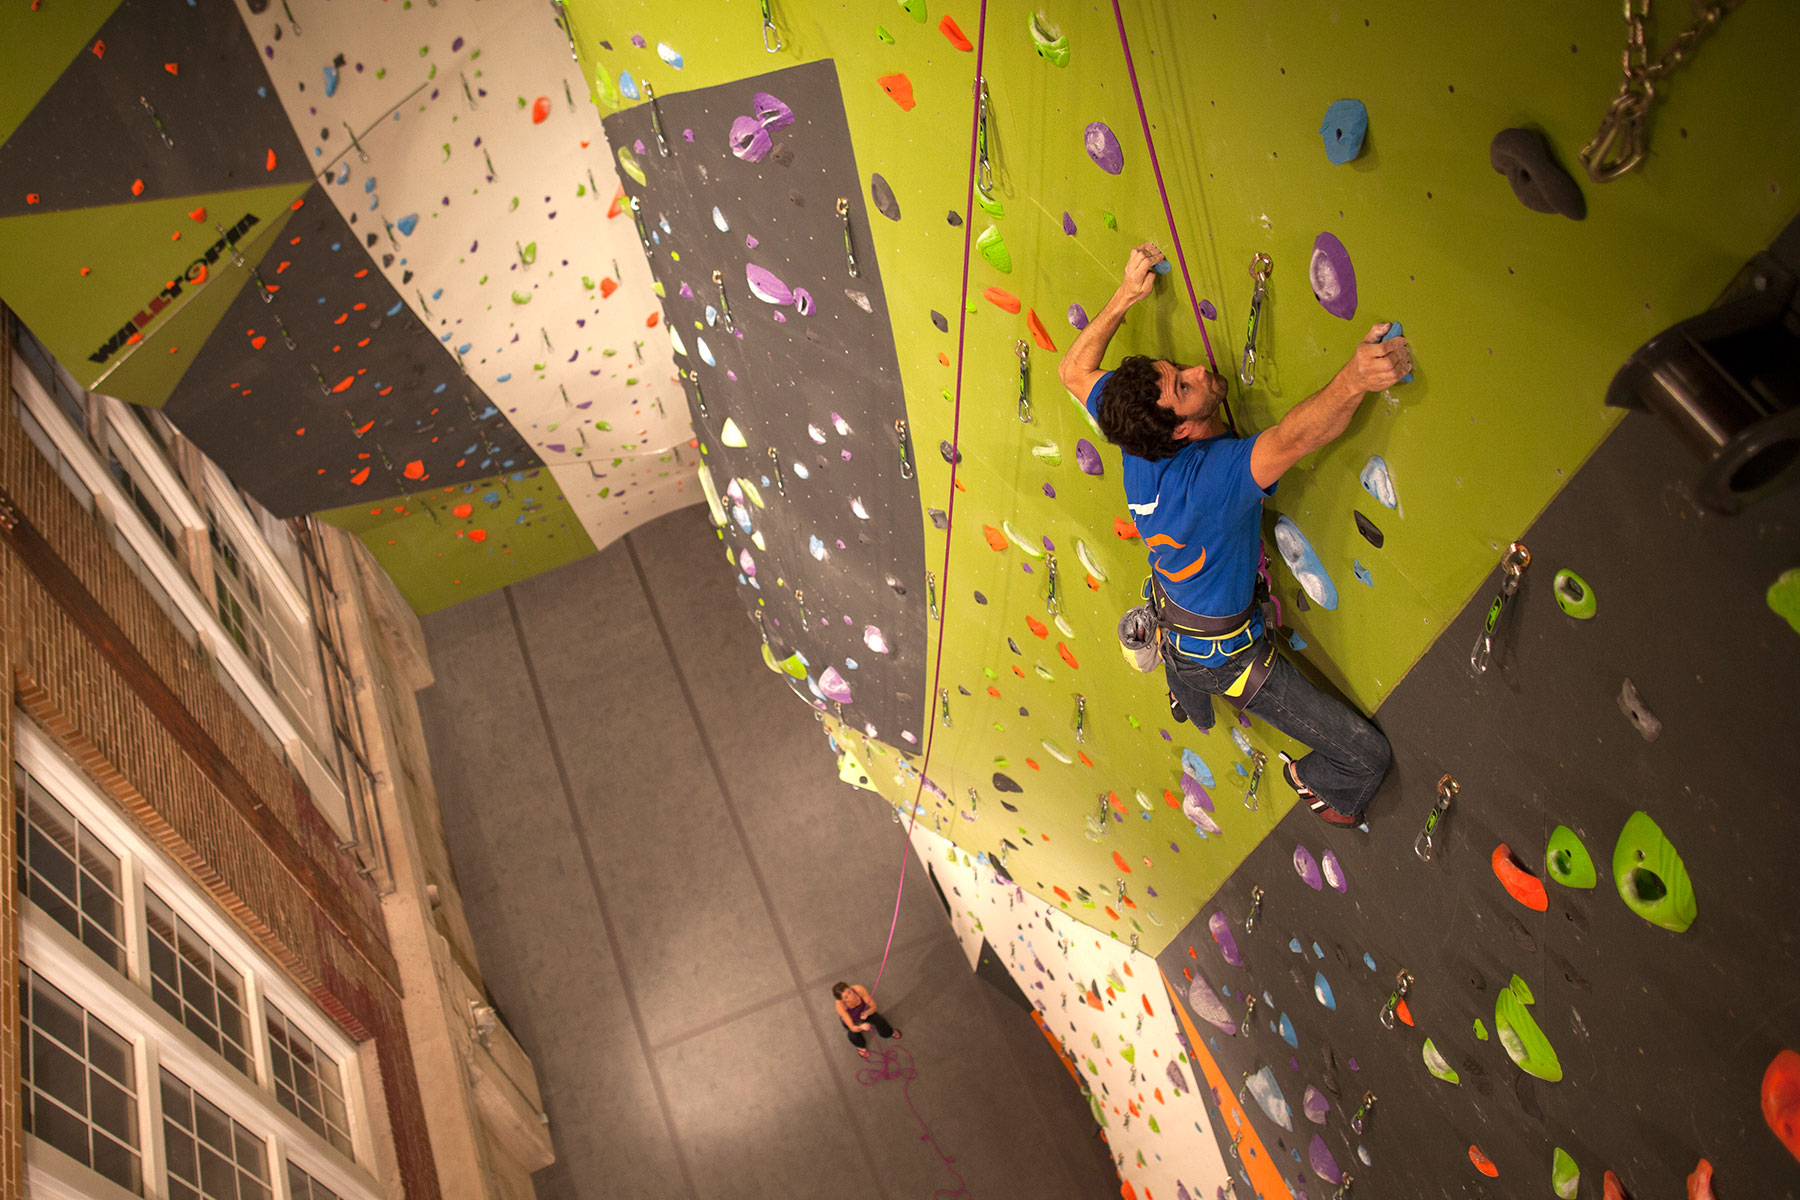 - Our silent auction will include items from many great local businesses. Come bid on two free day passes from Climb So iLL (@climbsoill) - St. Louis' premier indoor rock climbing gym.